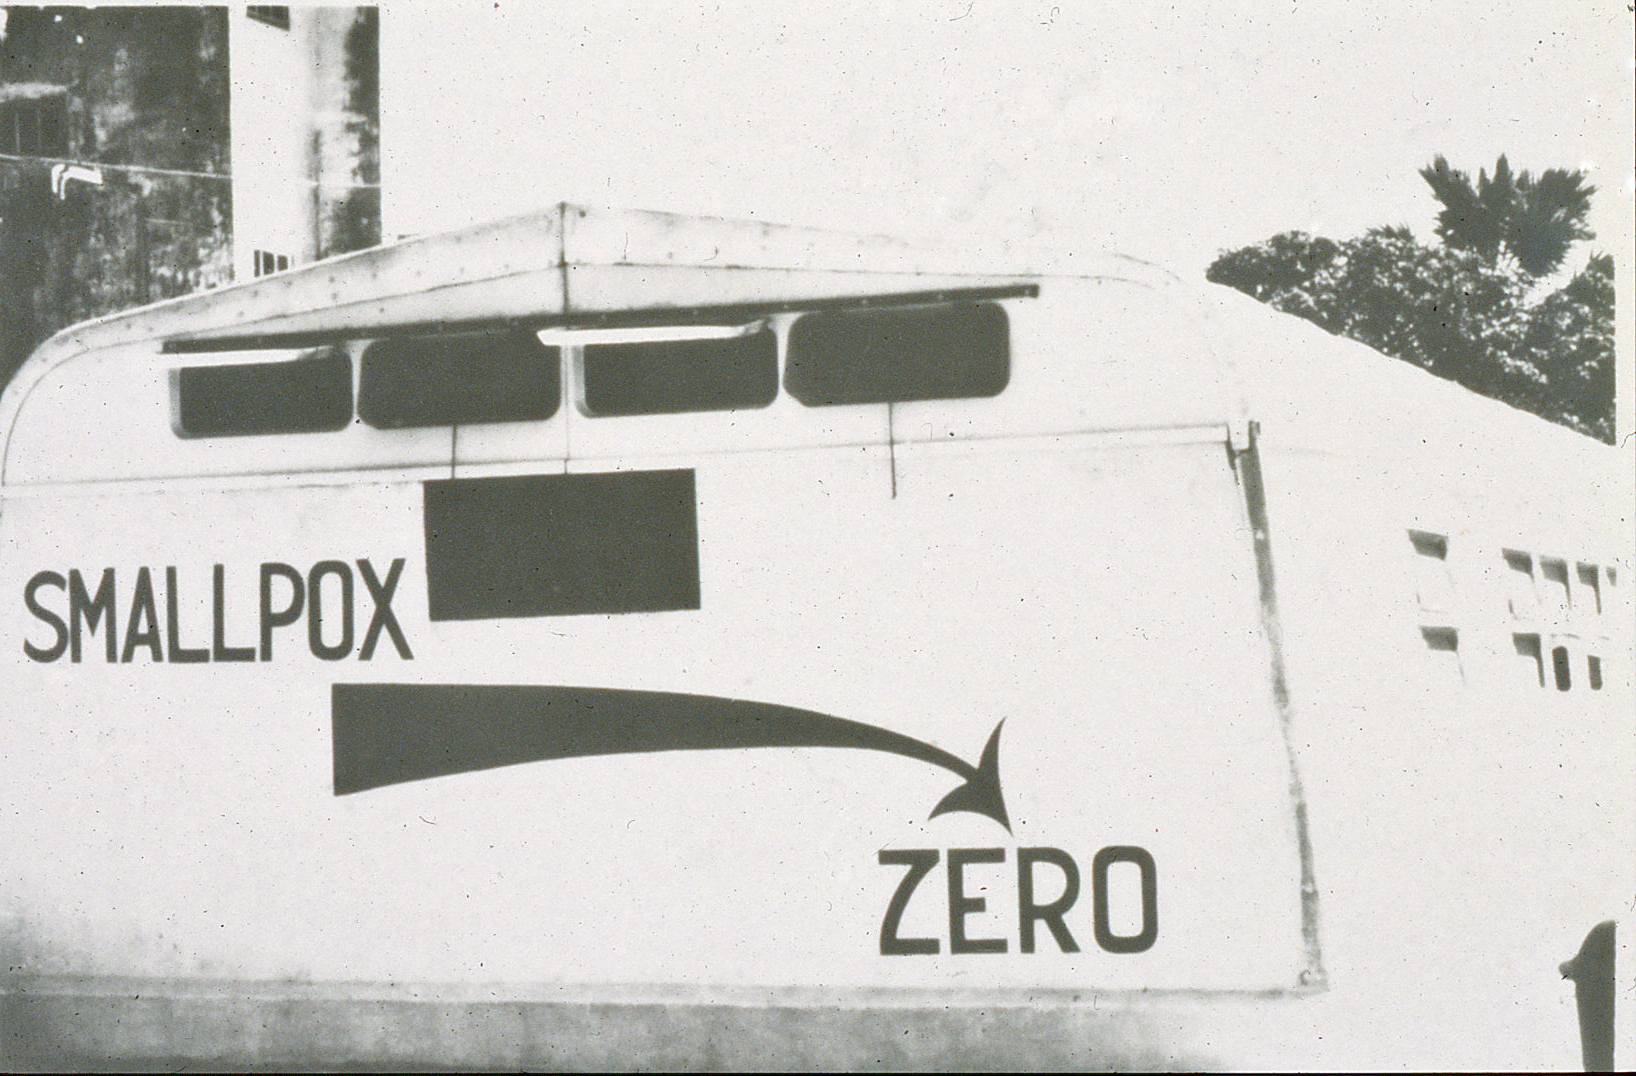 Smallpox-Zero-(deleted-4db21032-9ef67d-8c9675cc).jpg